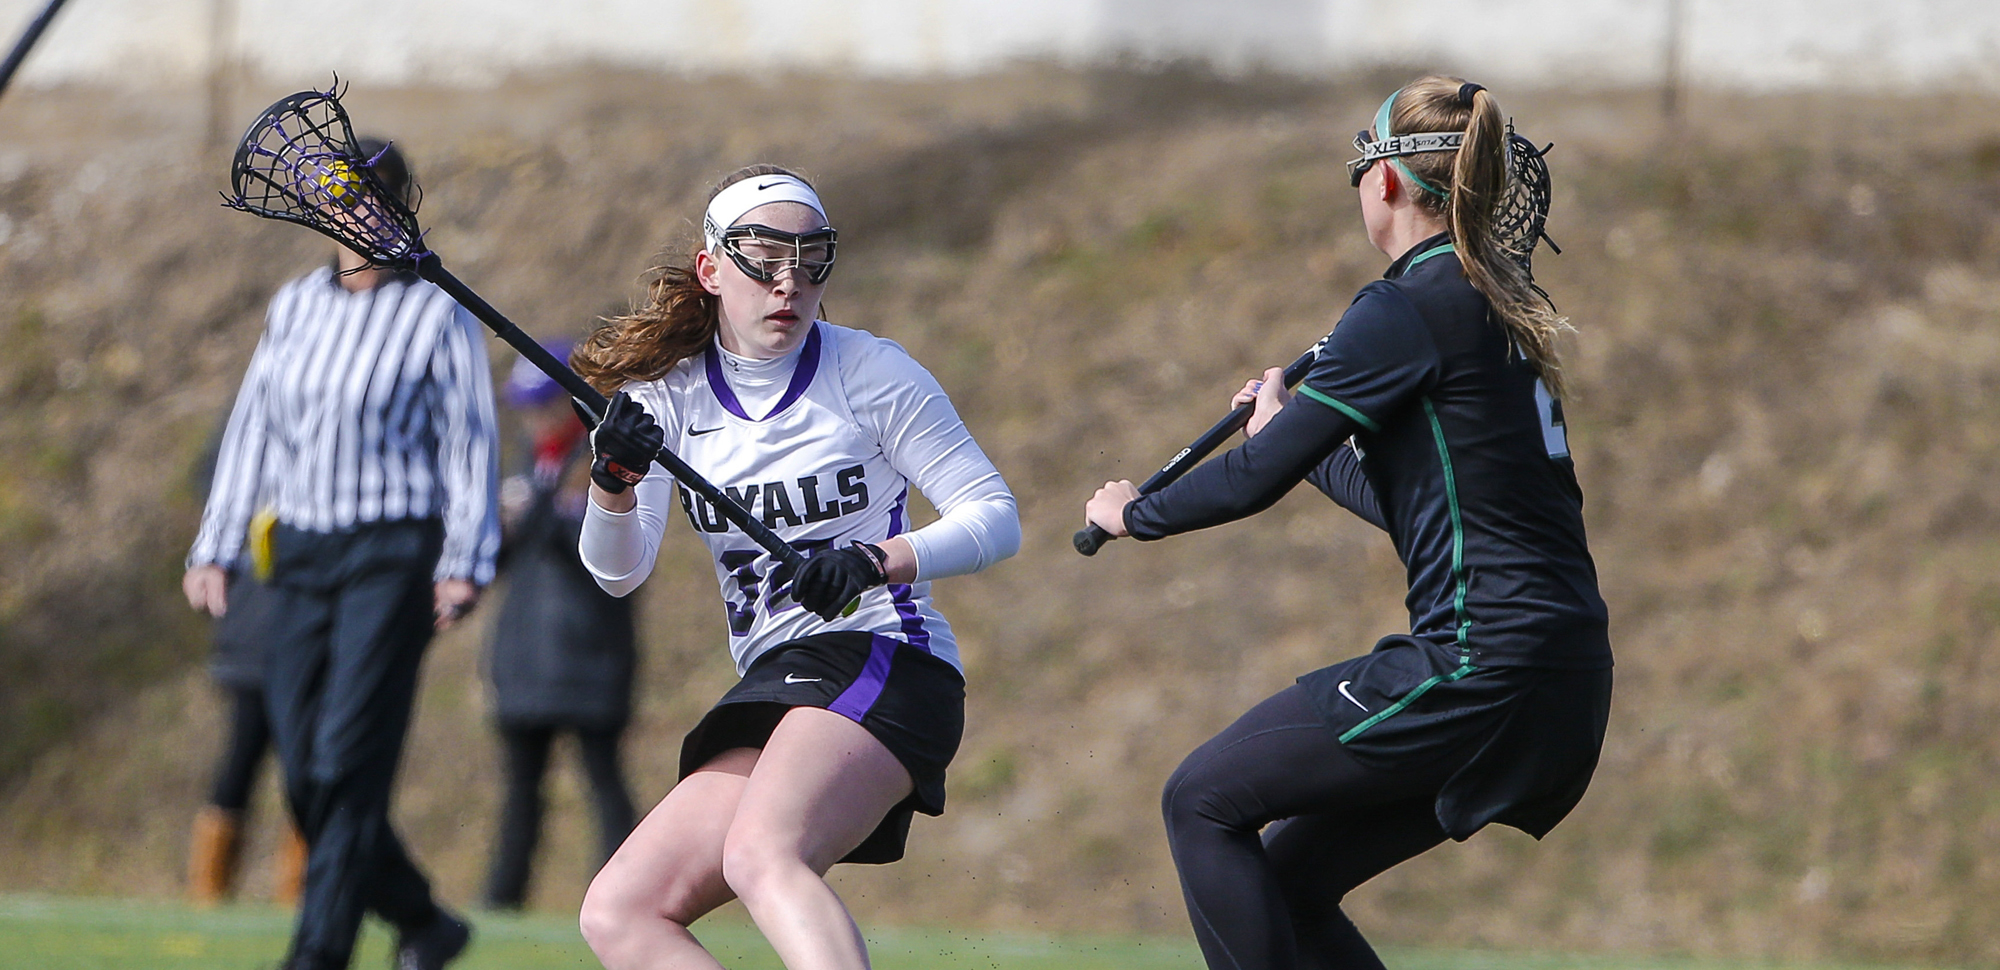 Sophomore Christine Olert scored four goals, as the University of Scranton women's lacrosse team opened a 12-2 lead in the first half and never looked back in a 17-8 win over Susquehanna on Saturday.